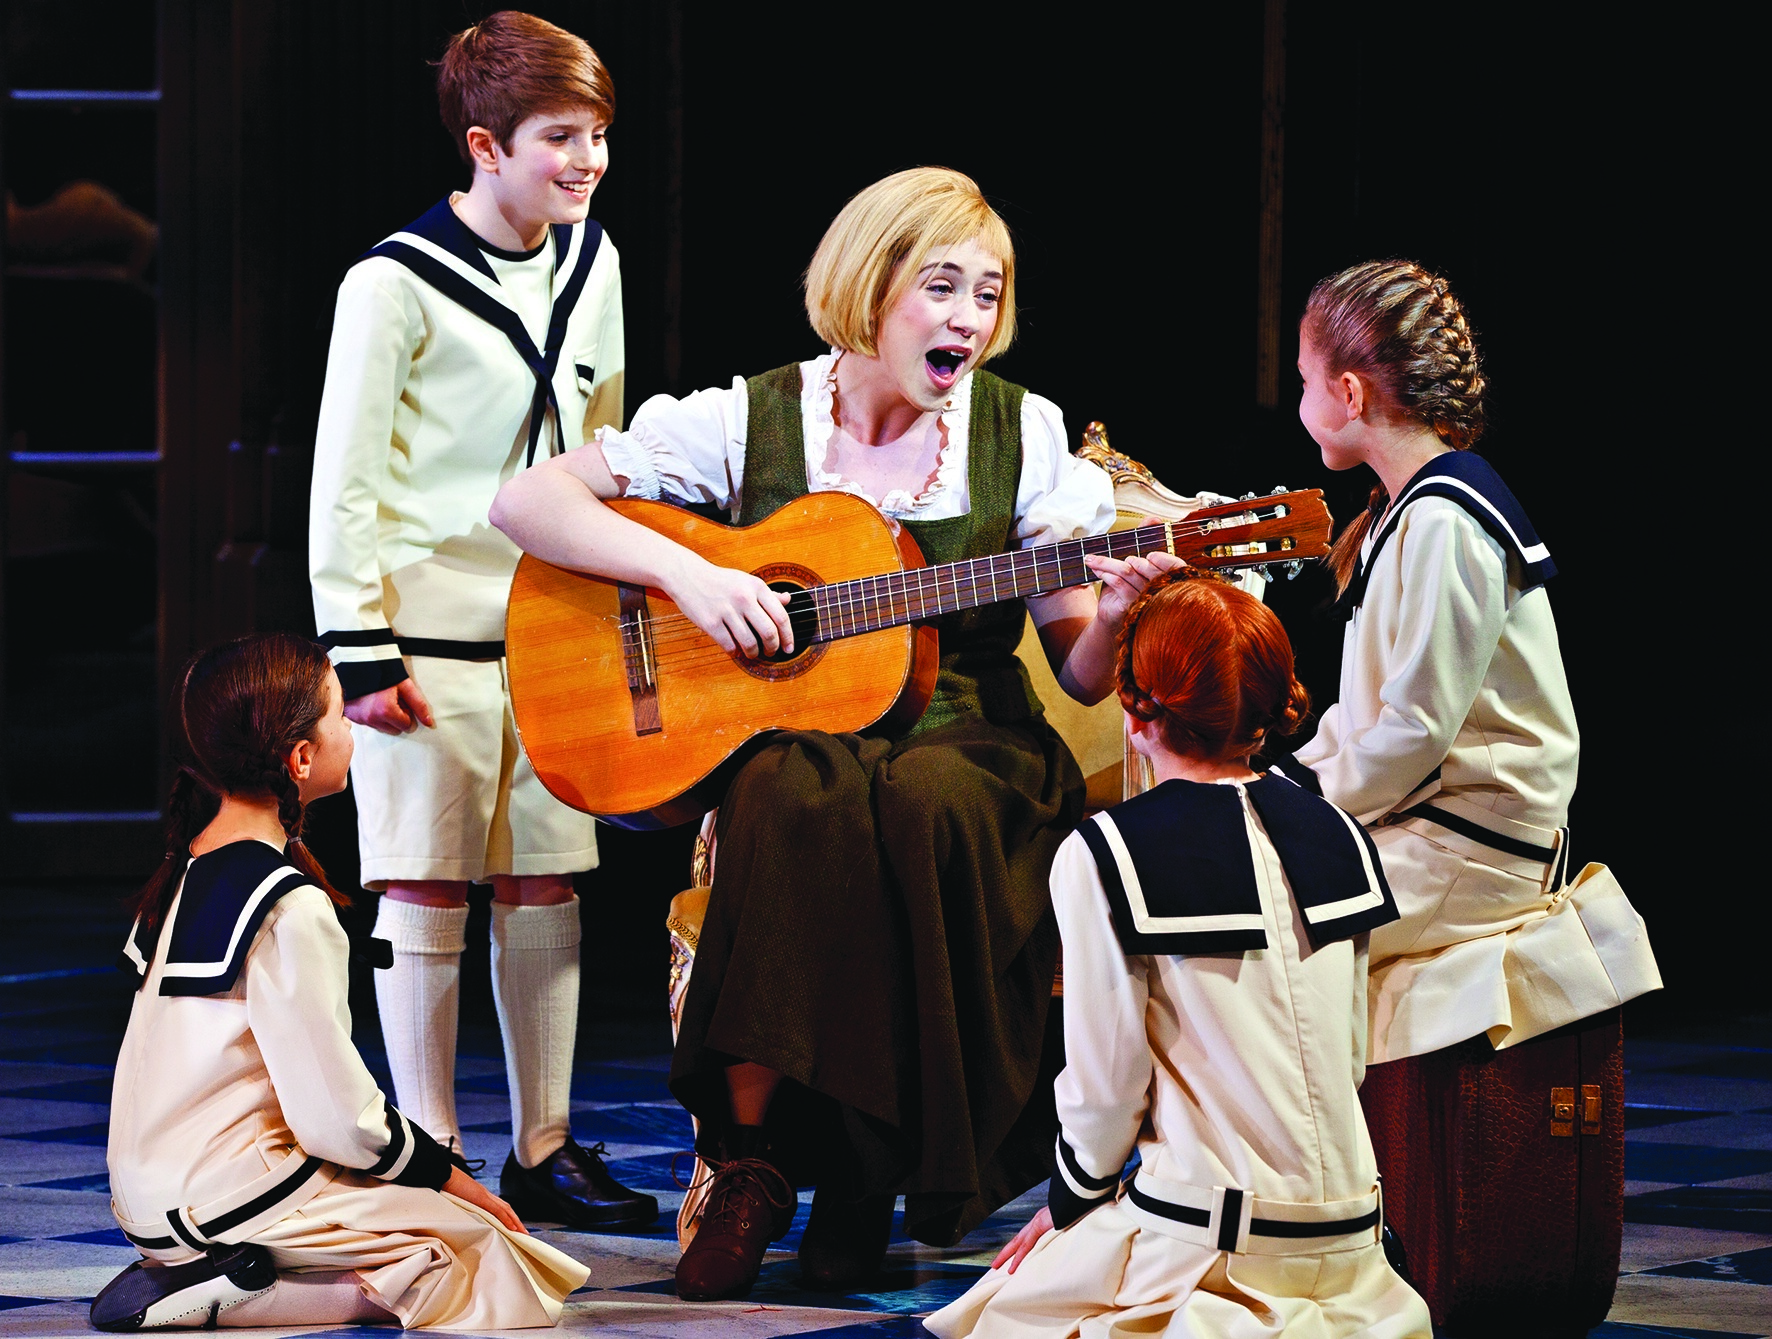 A scene from the upcoming Sound of Music production.